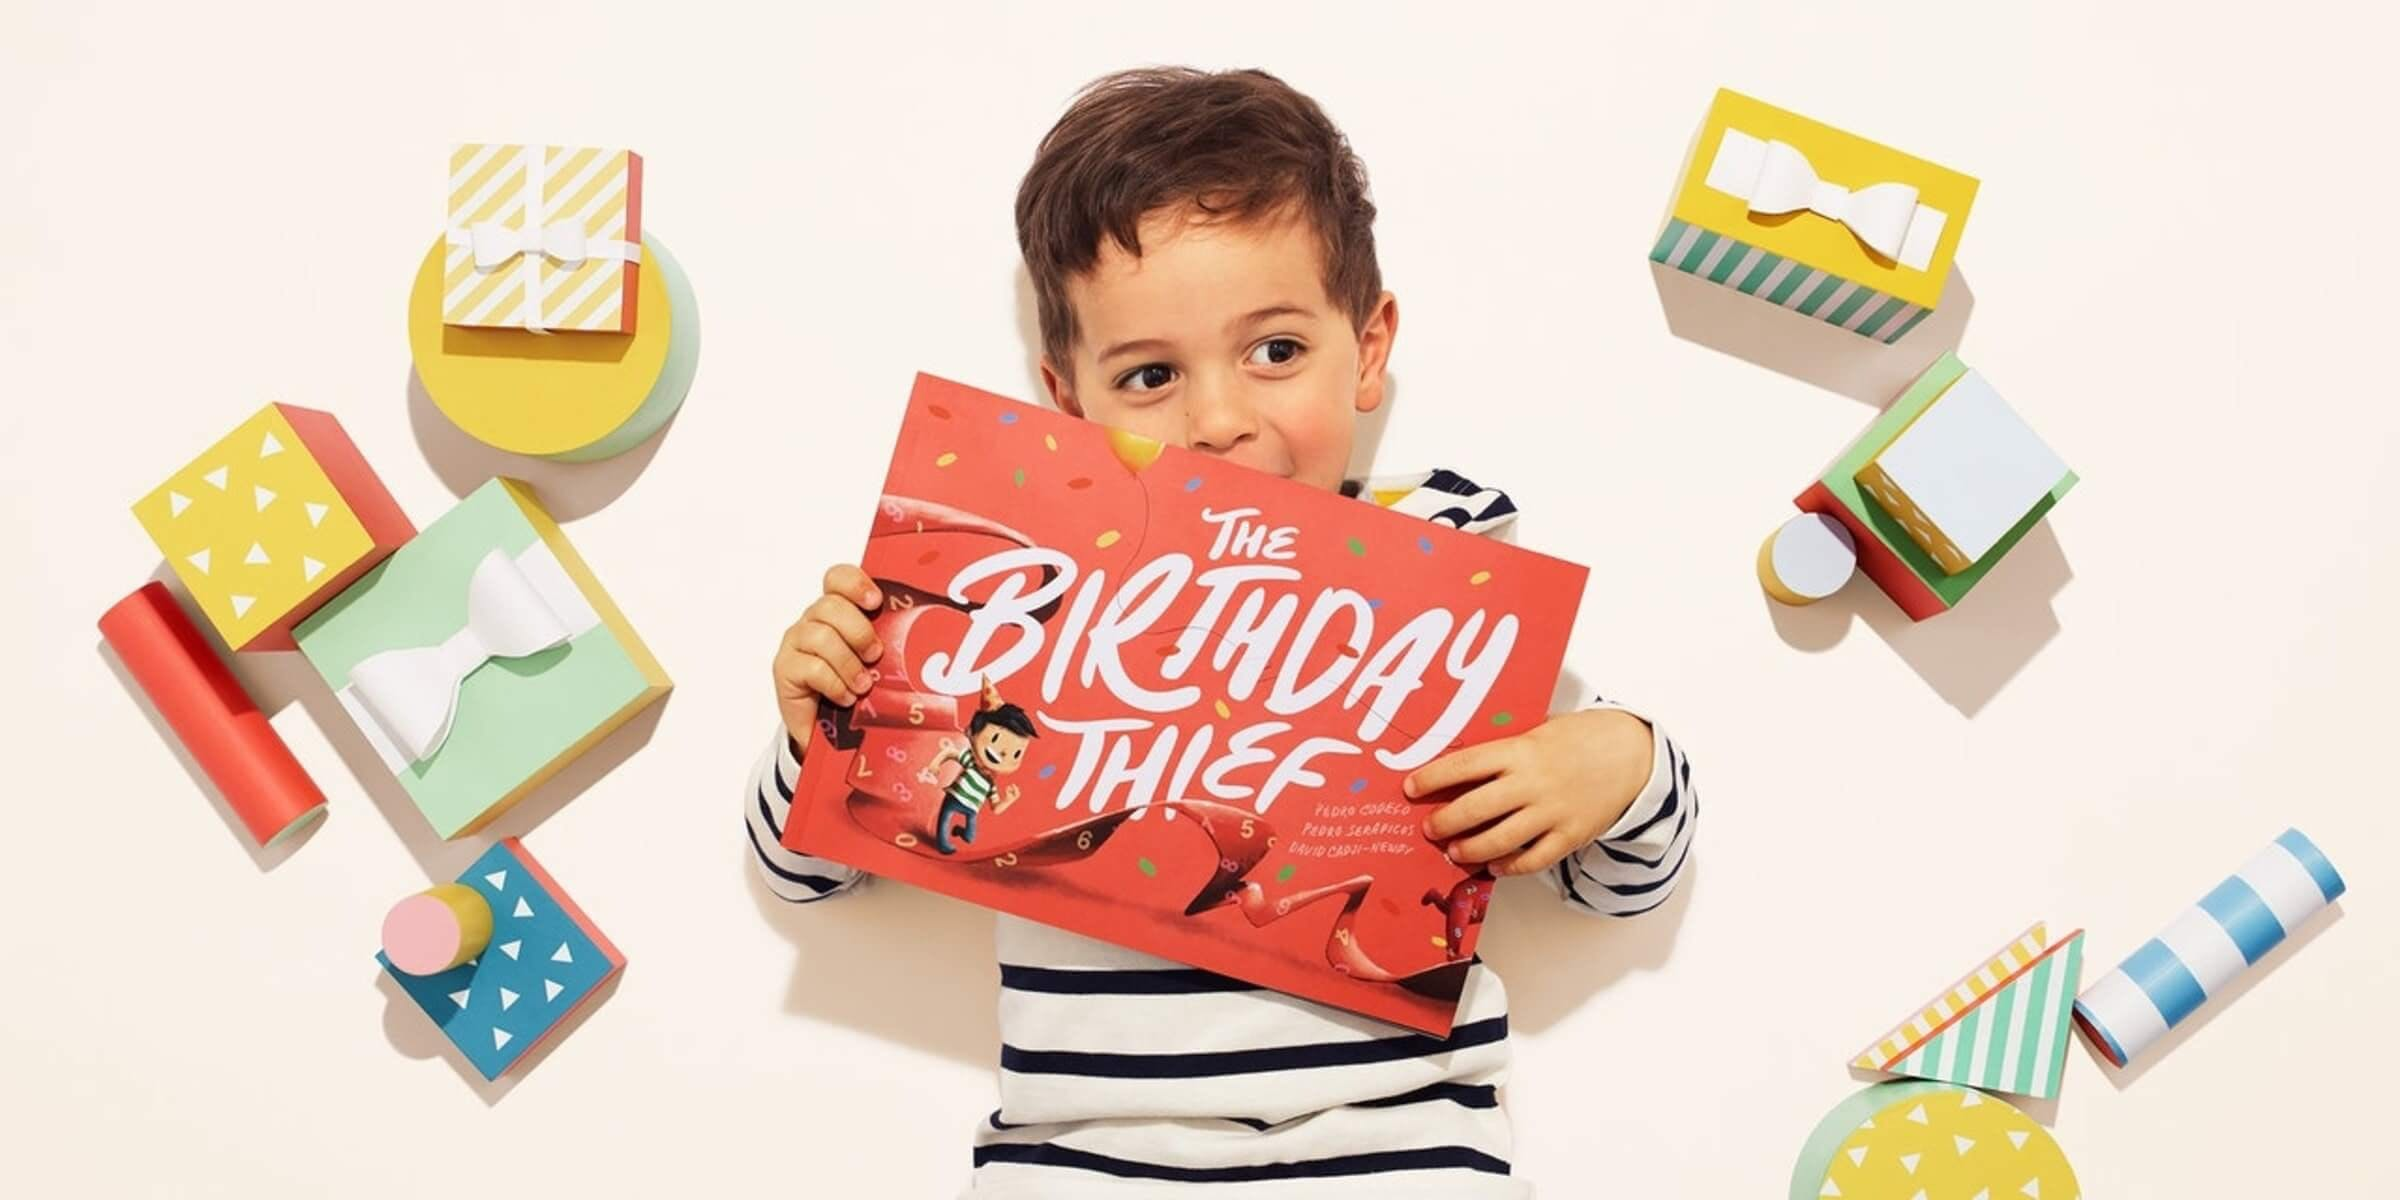 A little boy holding the Birthday Thief Book in the air with presents surrounding him